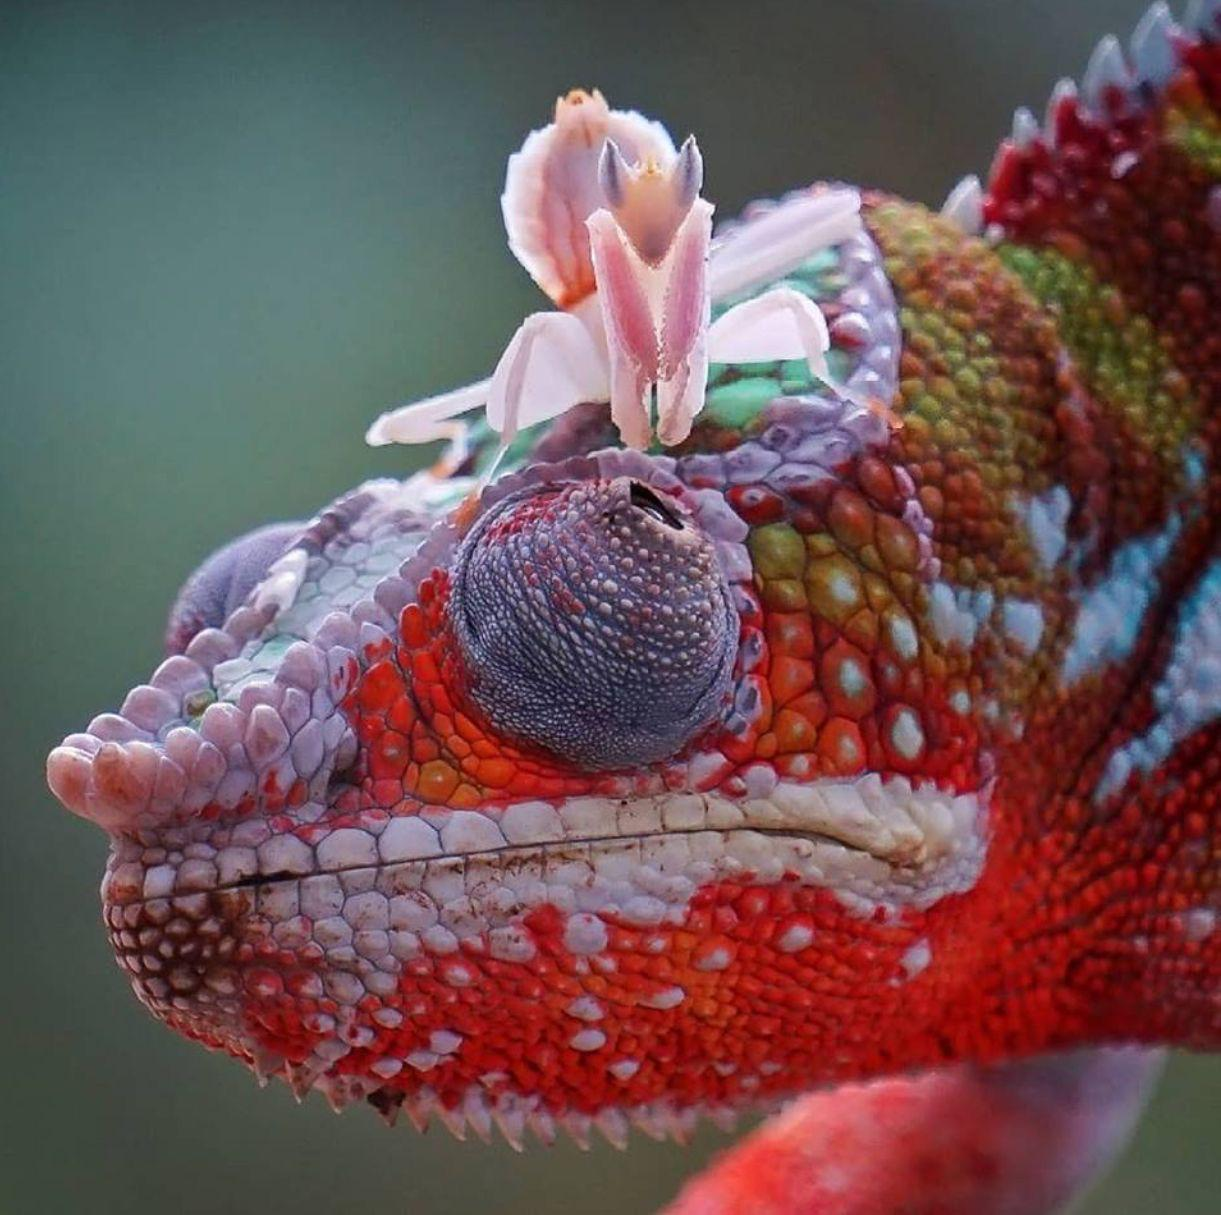 Panther Chameleon and Orchid Mantis